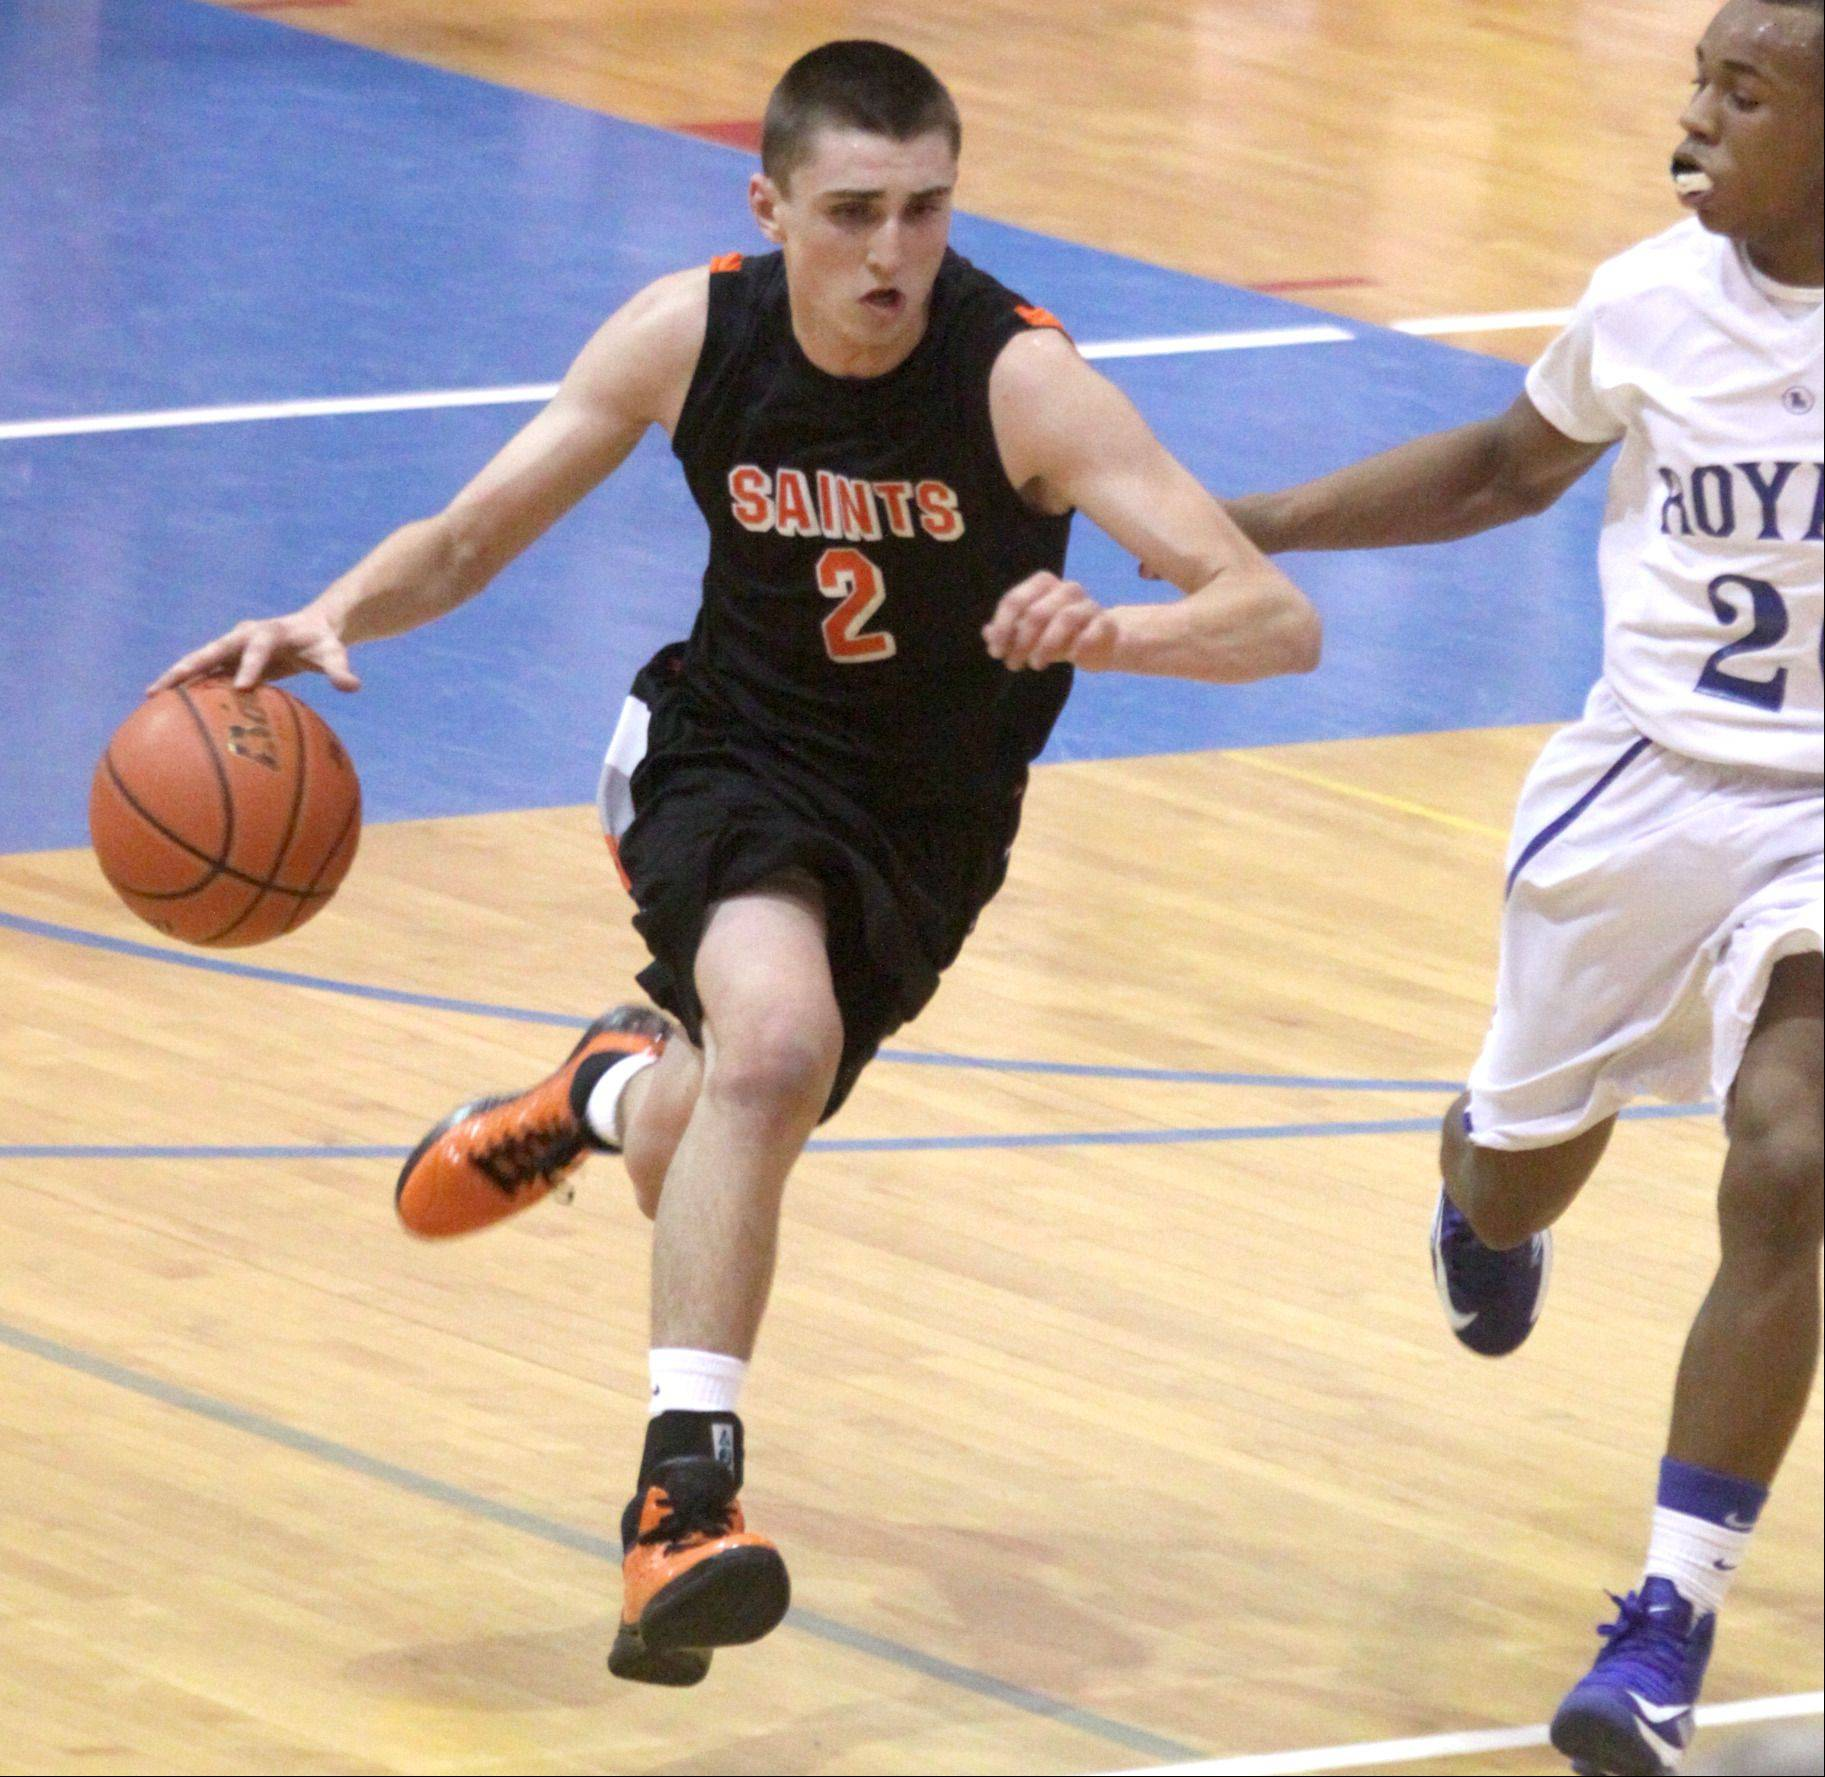 St. Charles East's Dom Adduci moves the ball during a varsity game at Larkin on Thursday night.